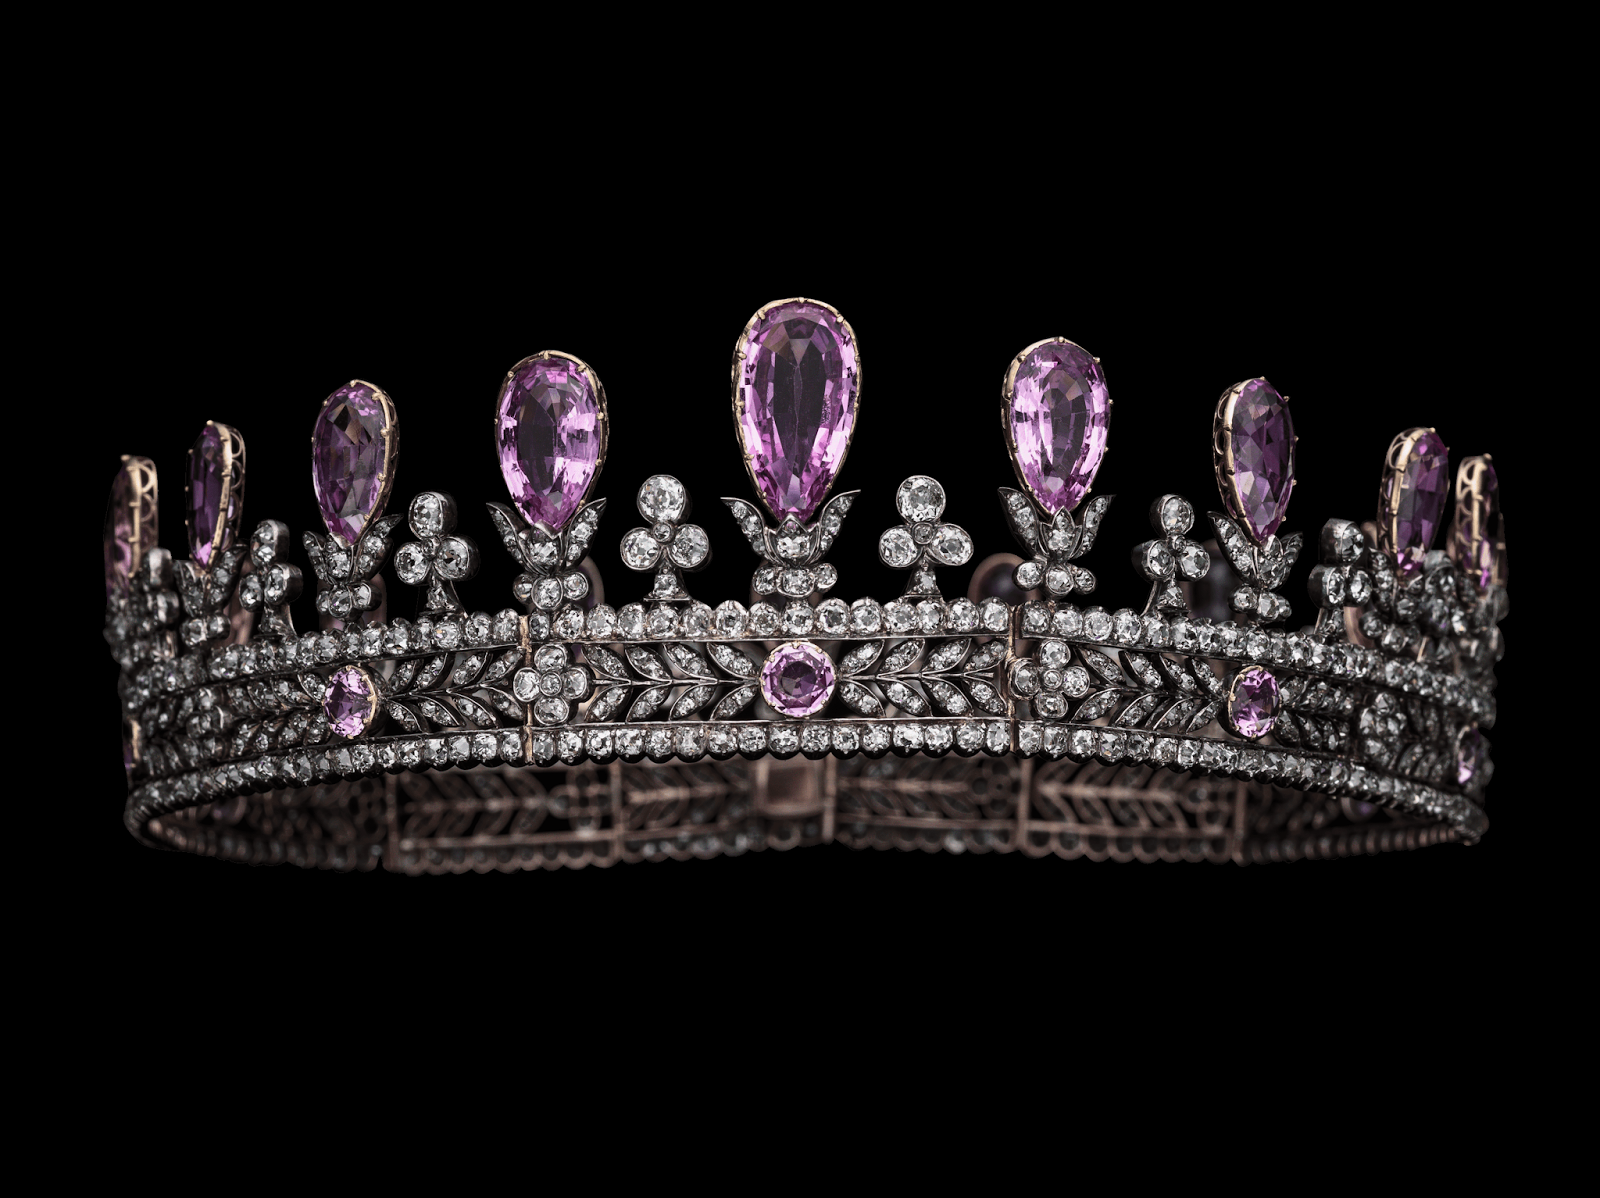 Hohenzollern Pink Topaz Tiara: the hinged circlet outlined by a row of collet-set diamonds on the top and lower edges, enclosing circular-cut topazes between diamond leafy branches meeting at diamond quatrefoils, surmounted by a graduated sequence of pear-shaped topazes supported by pairs of old-cut diamond scrolls, alternating with diamond trefoils.